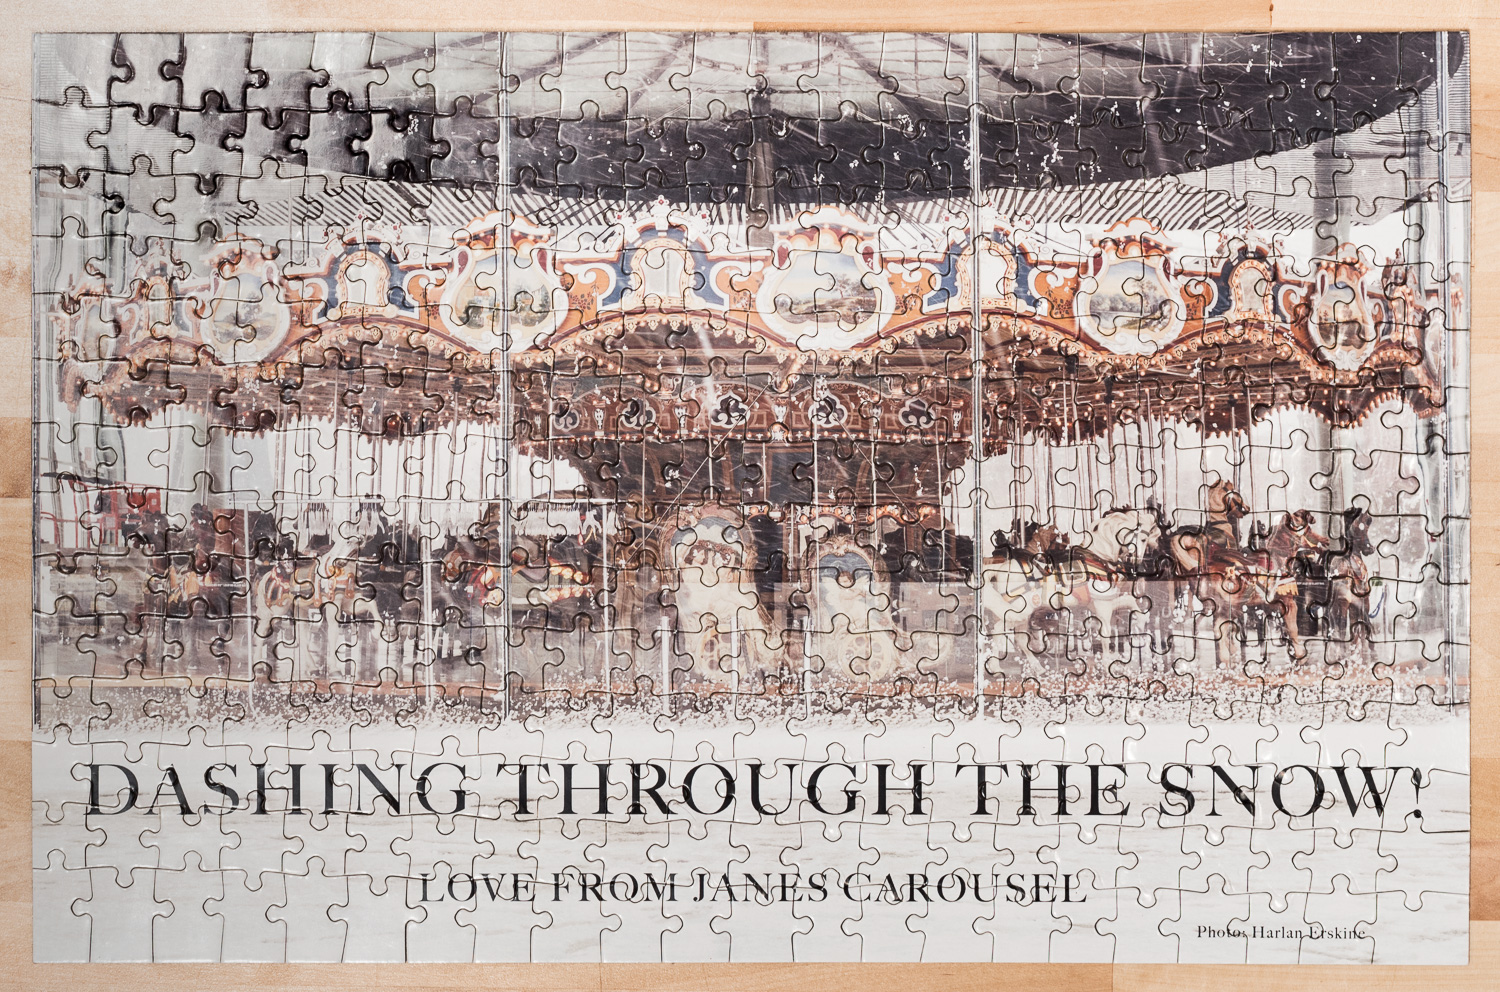 """Dashing Through the Snow! Love from Jane's Carousel Photo: Harlan Erskine"""